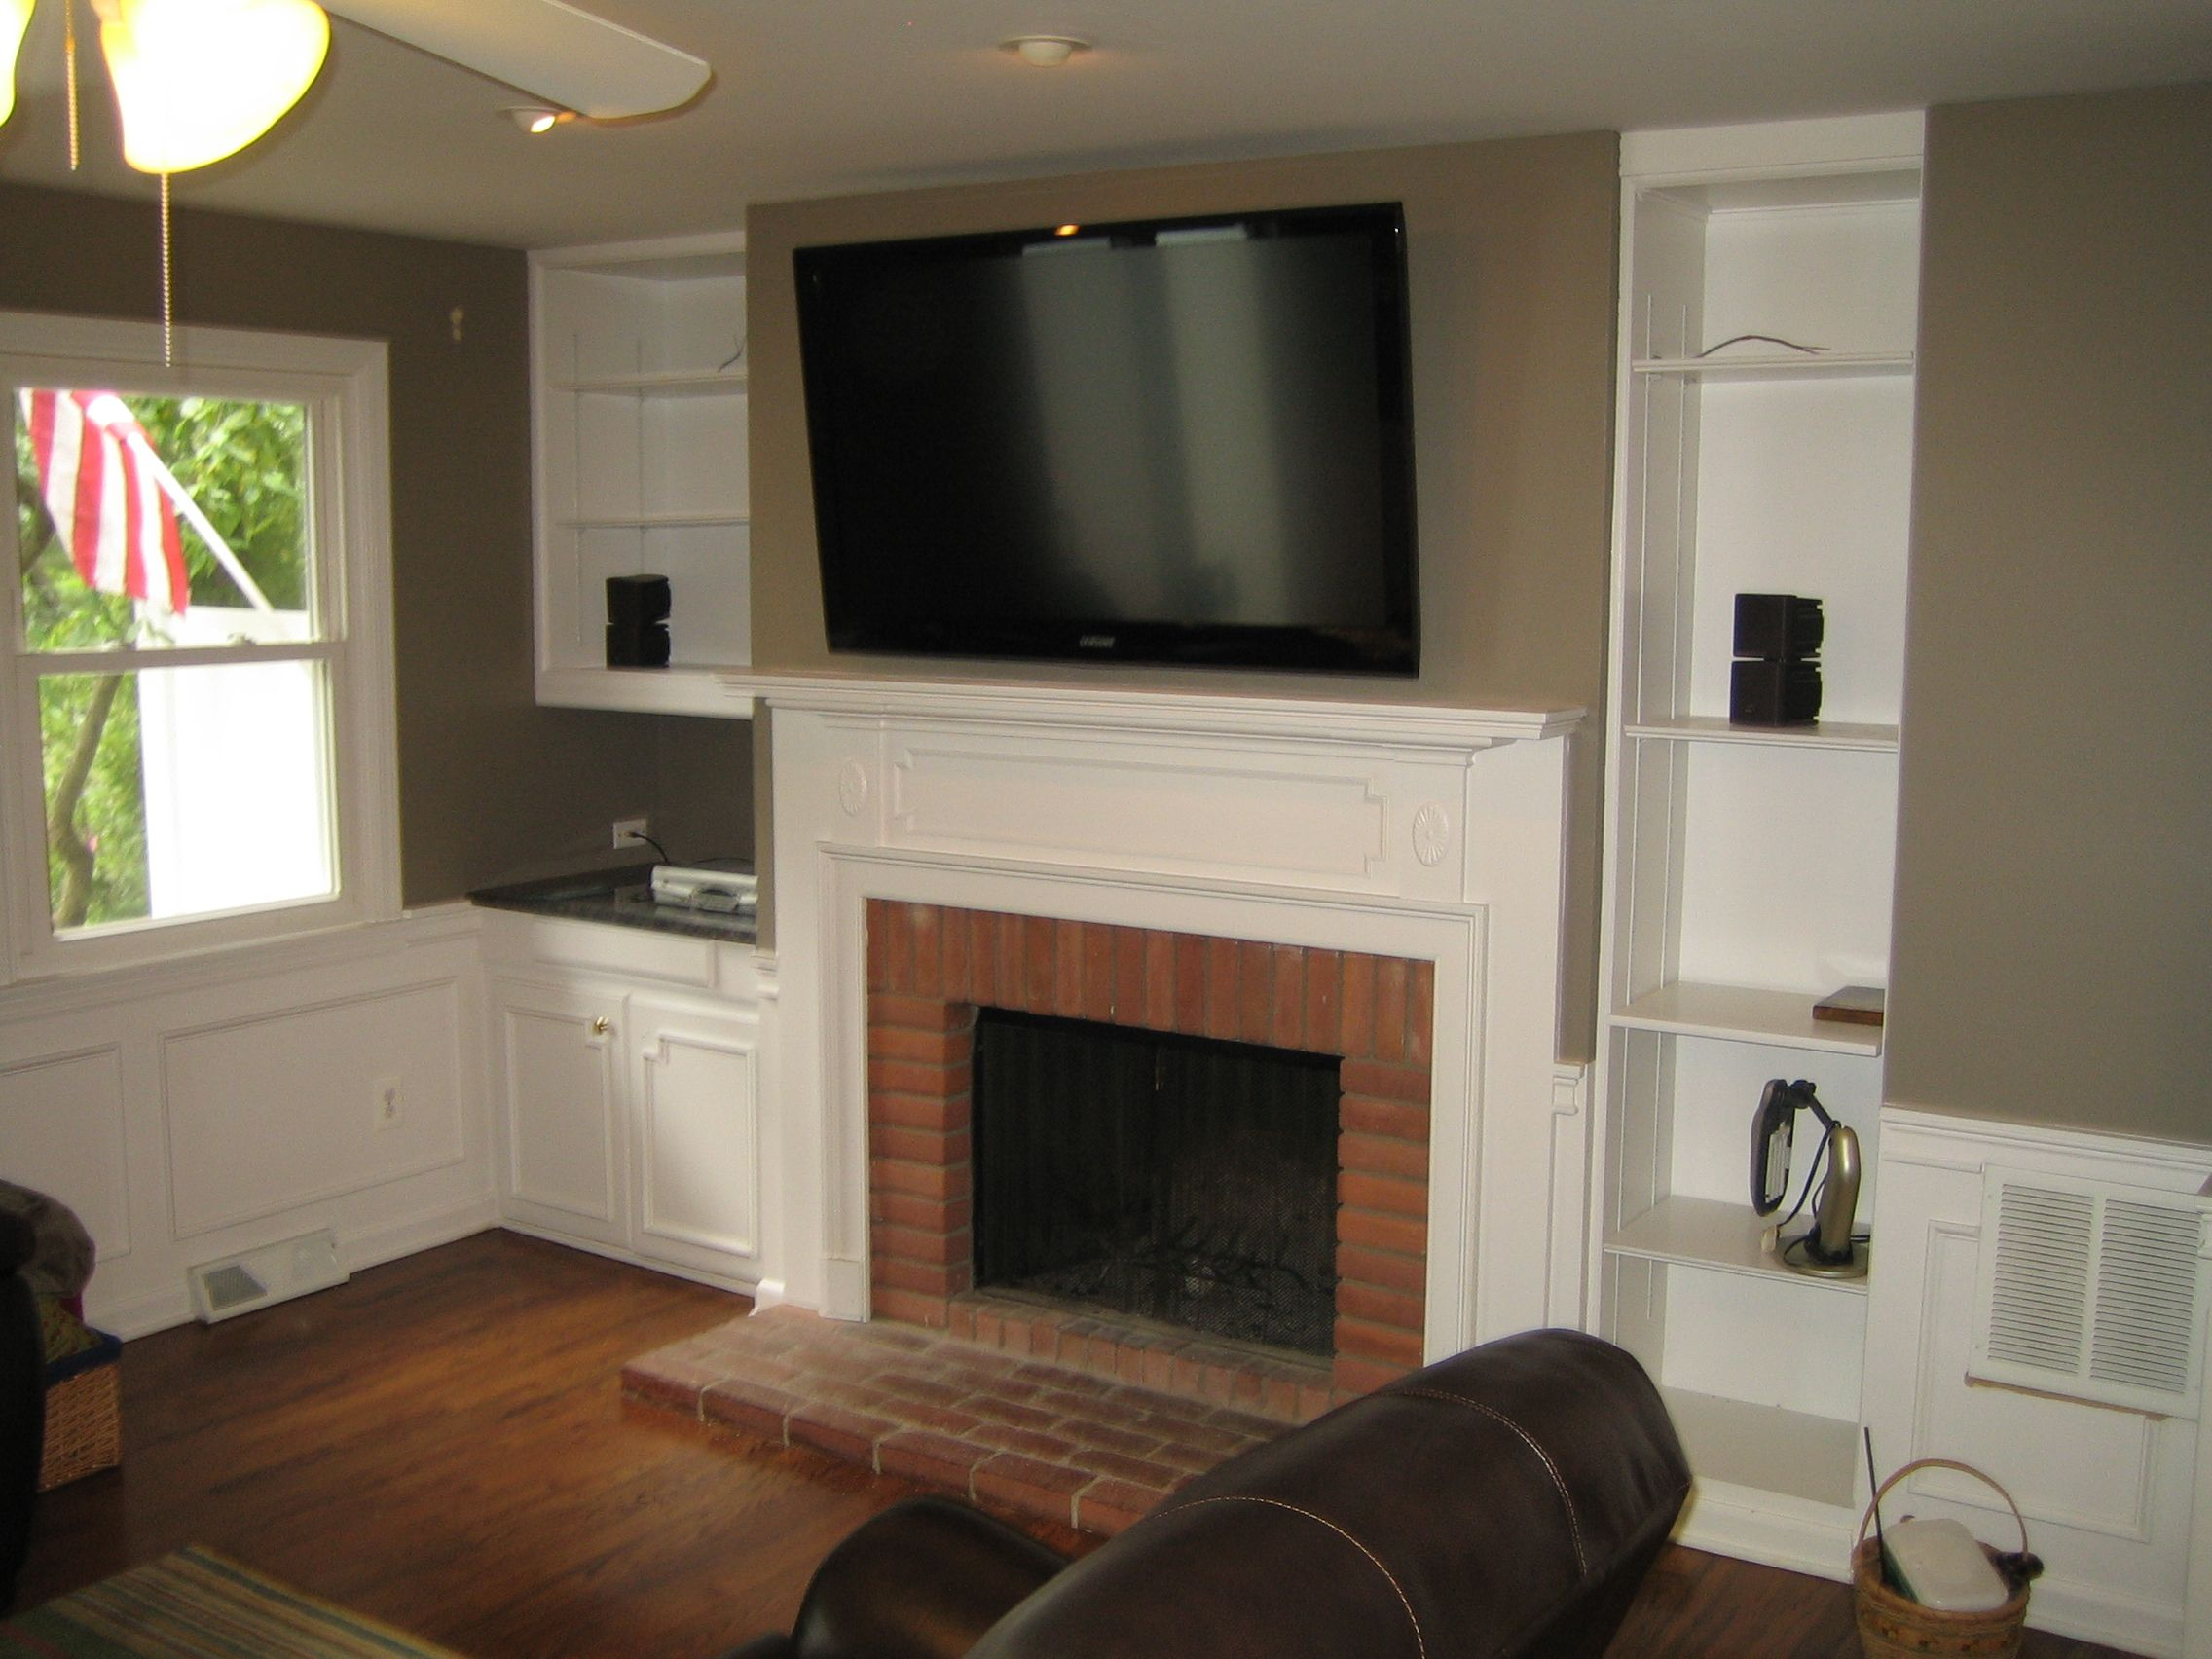 How Mount Tv Fireplace Ehow The Area Above Your Is An Ideal Place To A Television Description From Askhomedesign